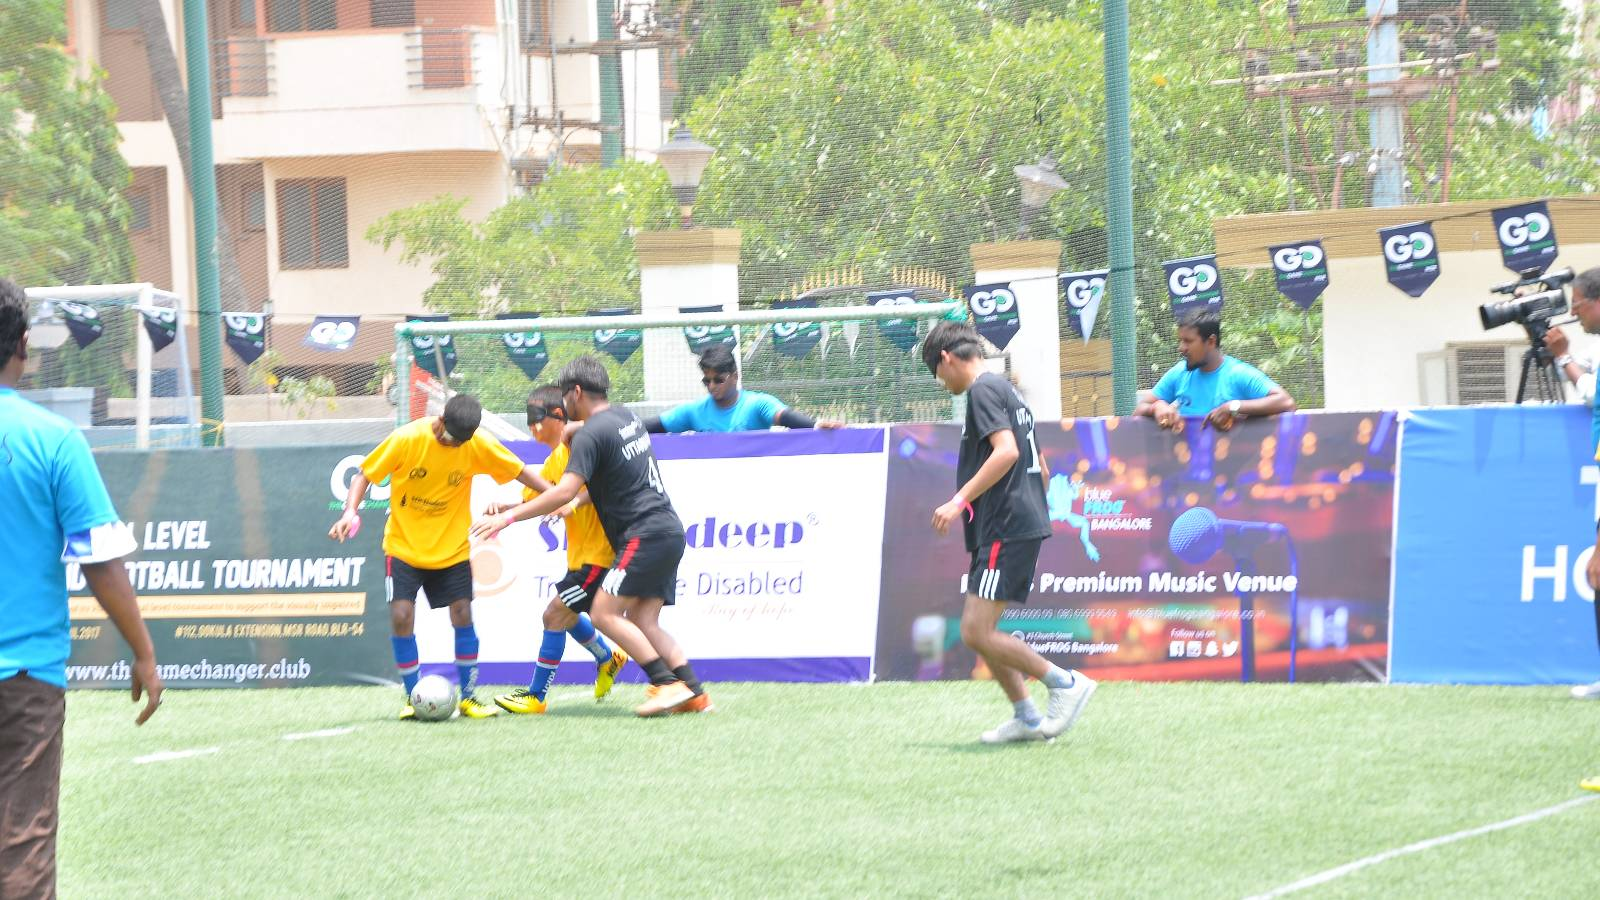 All India Blind football tournment organised by snehadeep